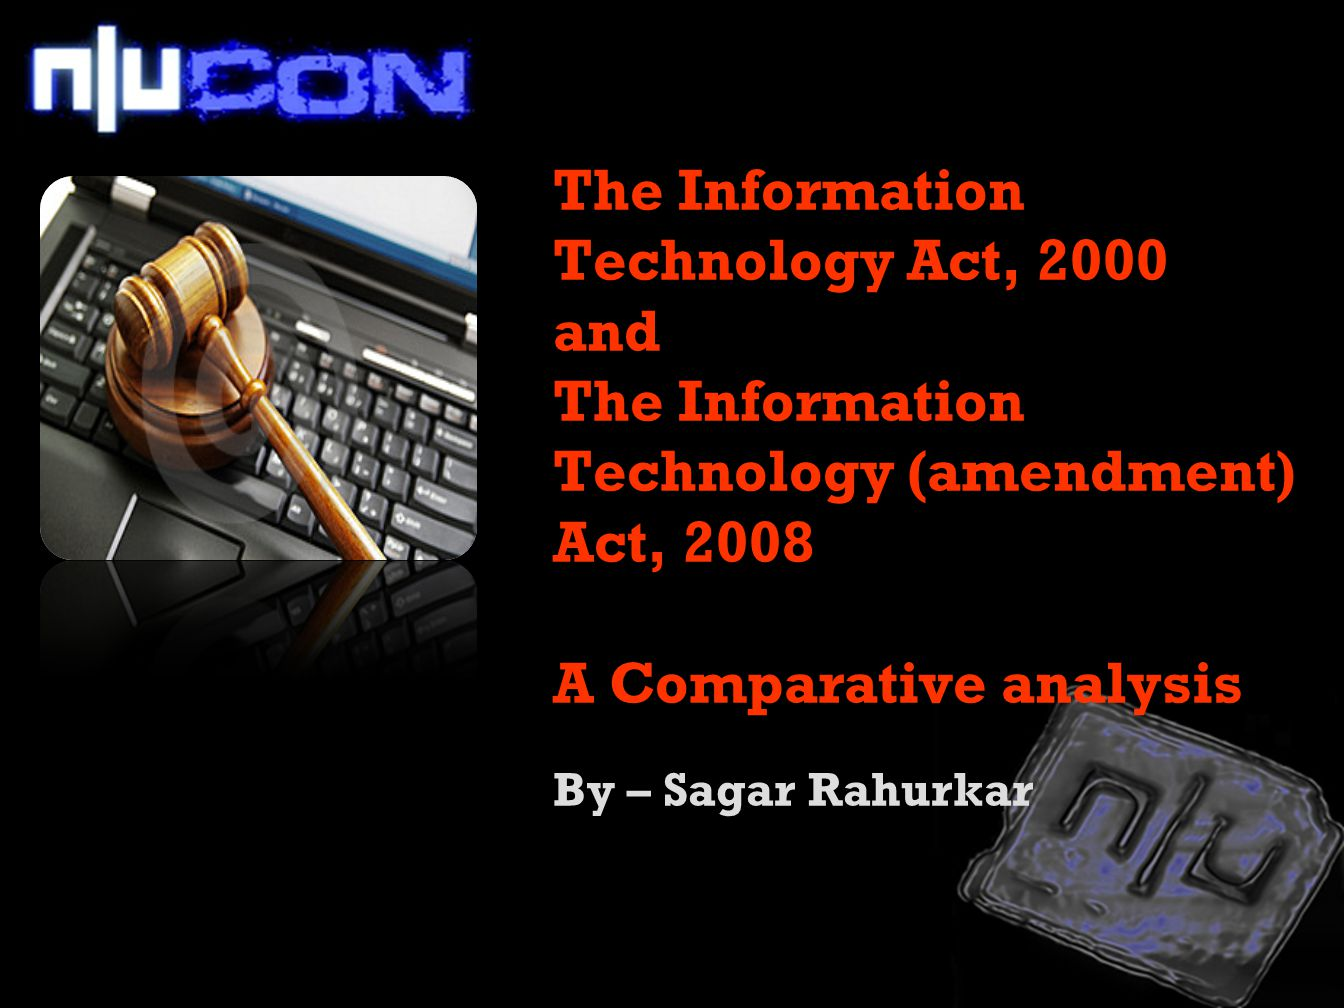 The Information Technology Act, 2000 and The Information Technology (amendment) Act, 2008 A Comparative analysis By – Sagar Rahurkar